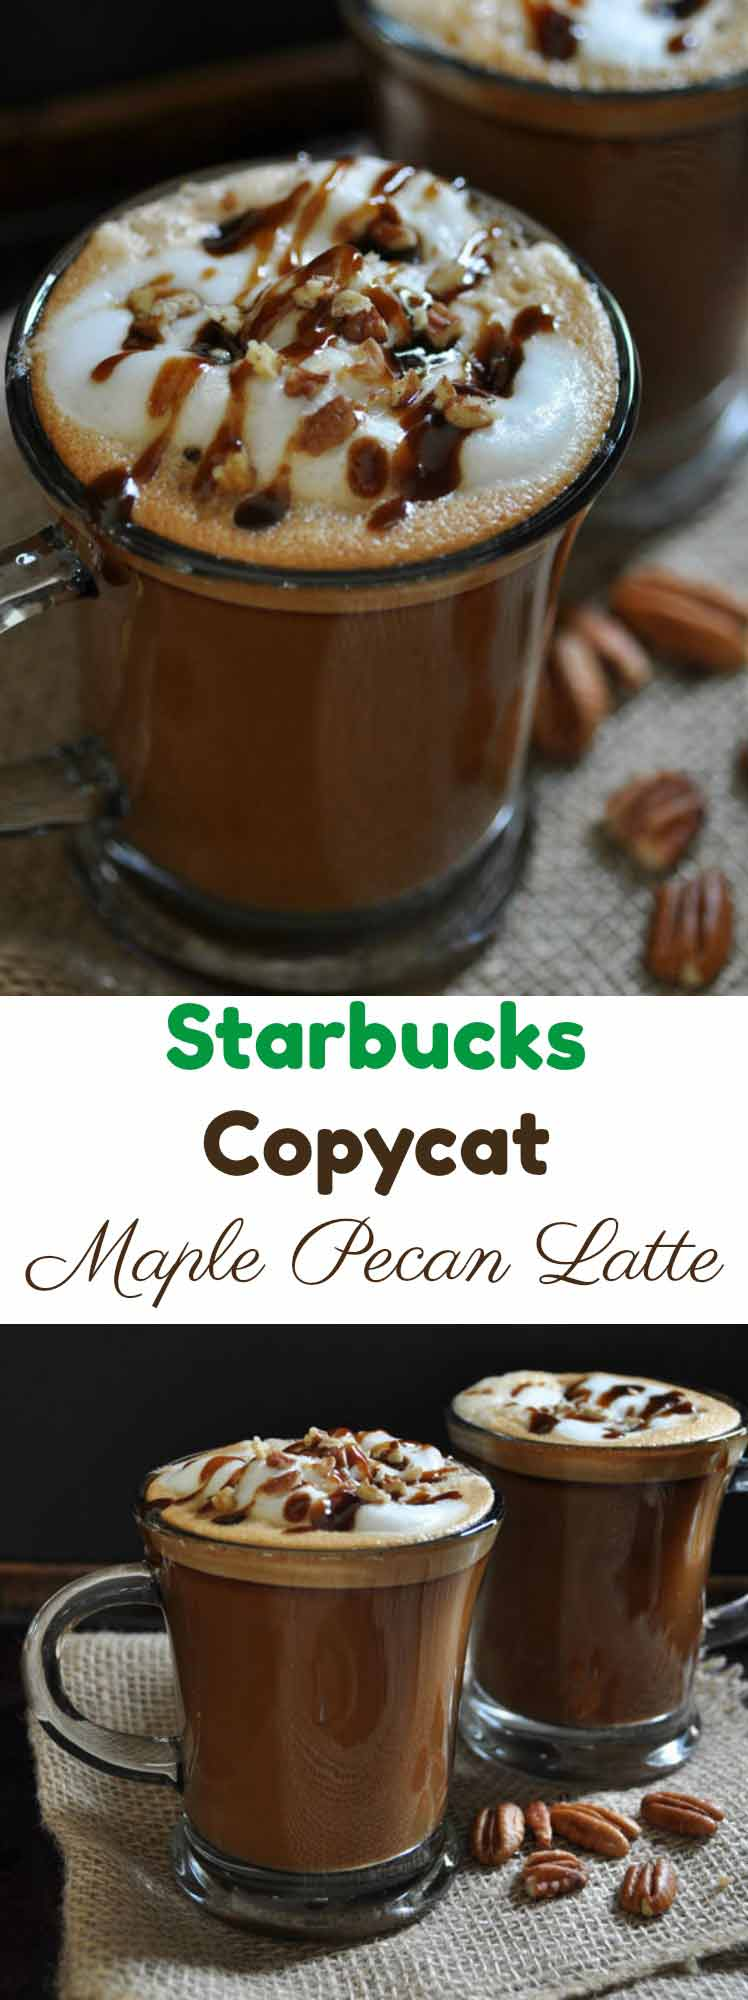 Starbucks Copycat Maple Pecan Latte made in your kitchen! Pure pecan extract and plant-based milk make it vegan!